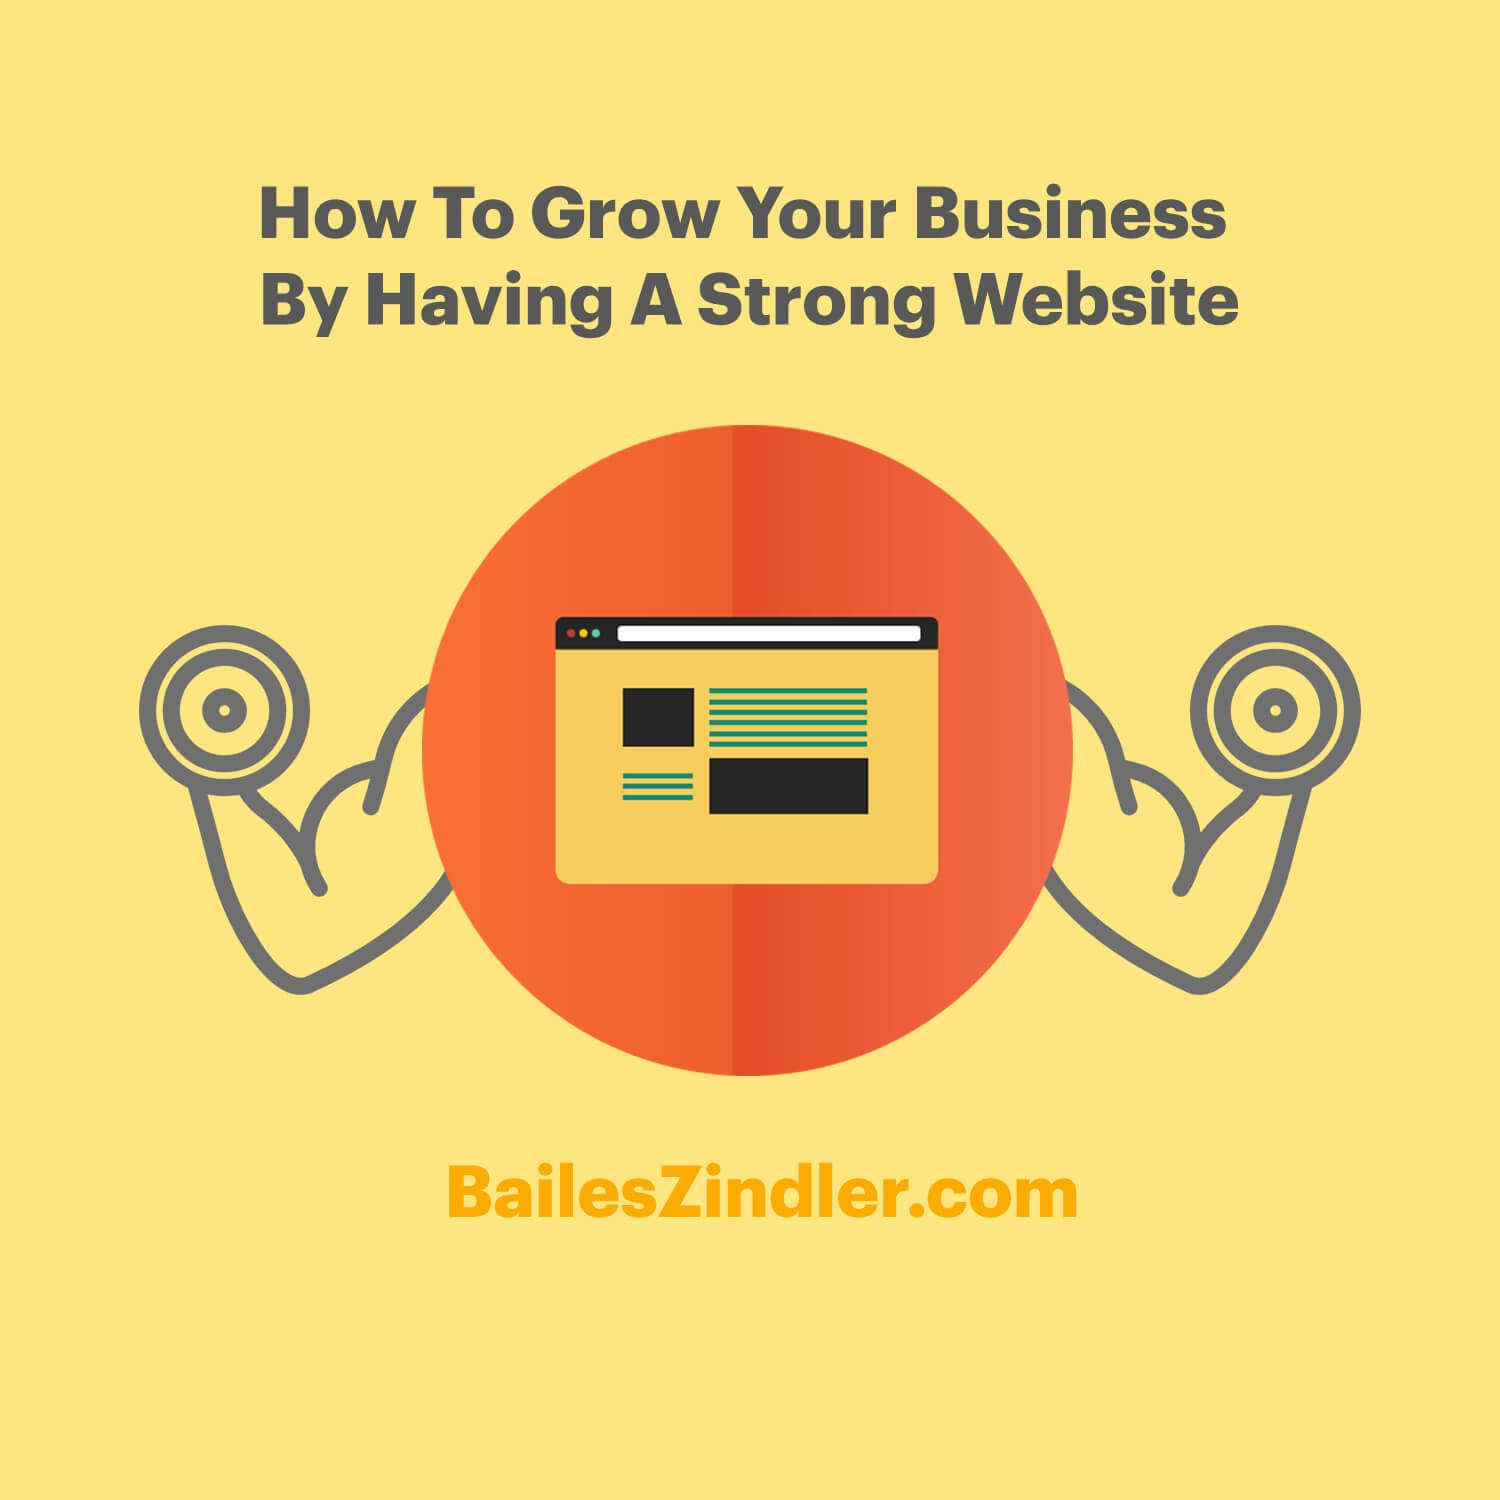 How To Grow Your Business By Having A Strong Website